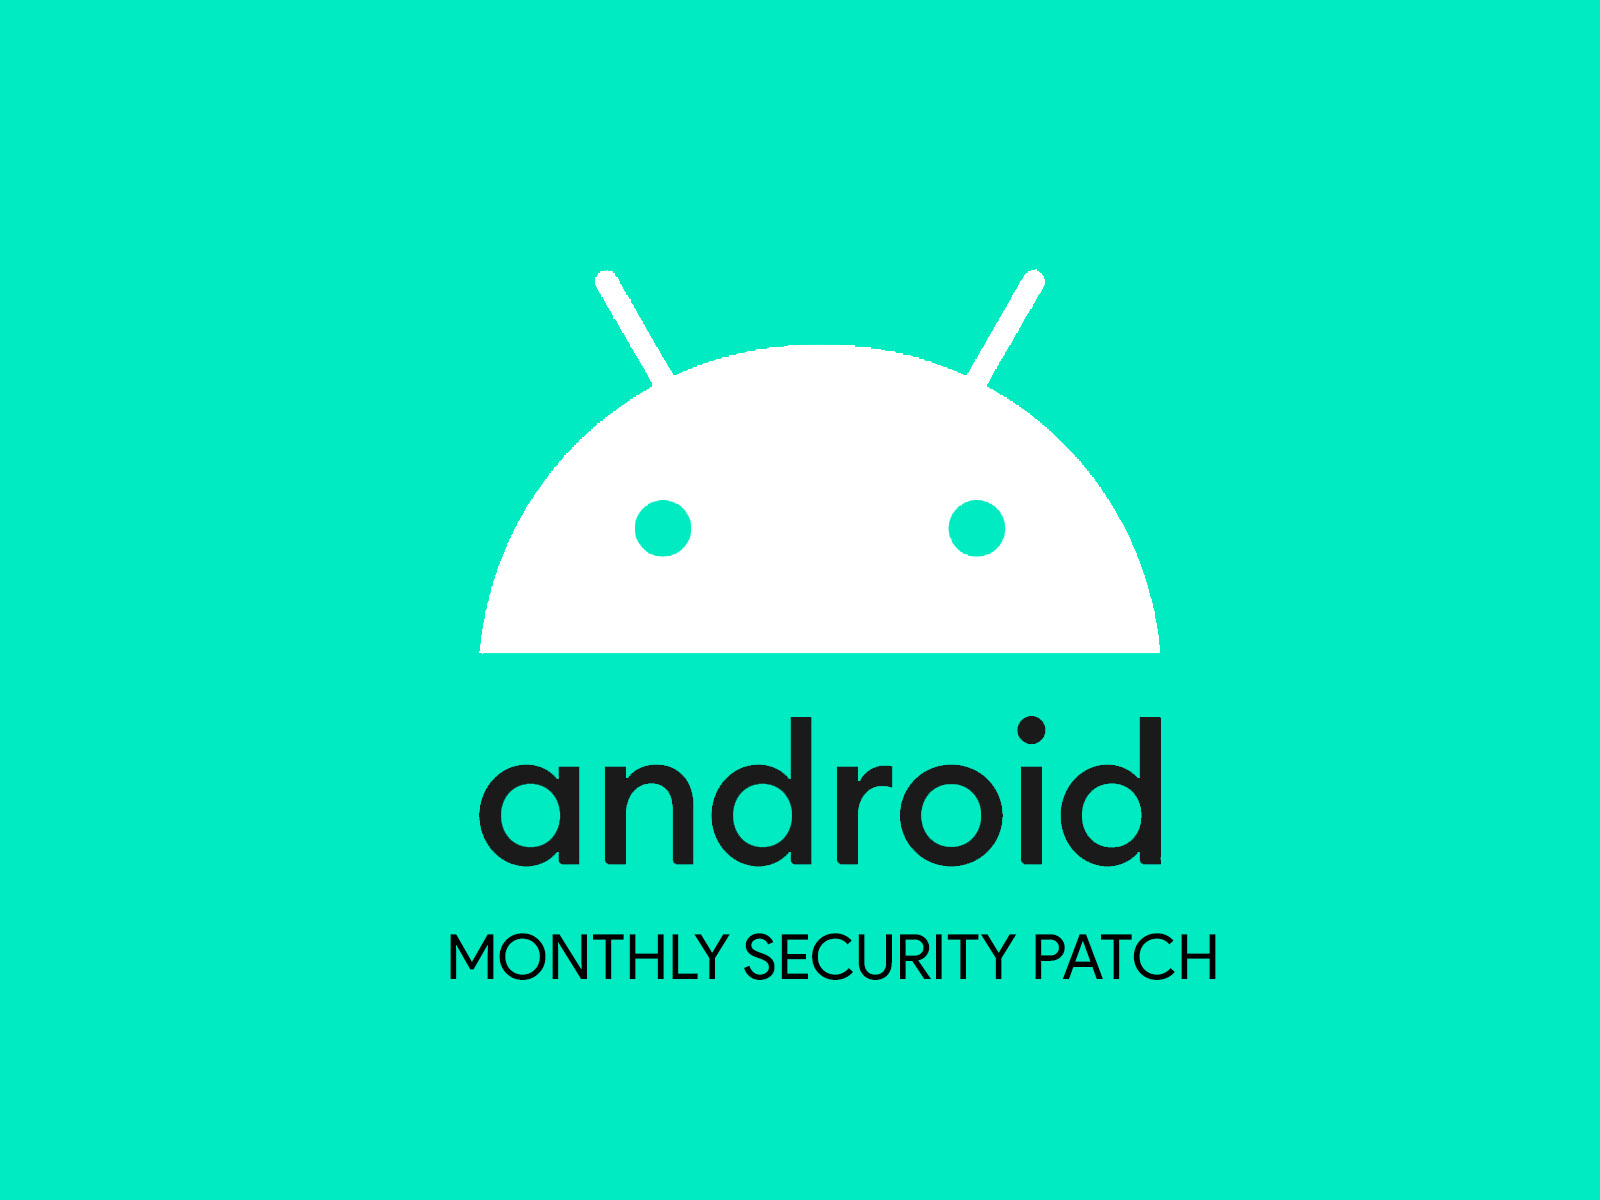 Google introduces new March 2021 Android Security patch for Pixel devices